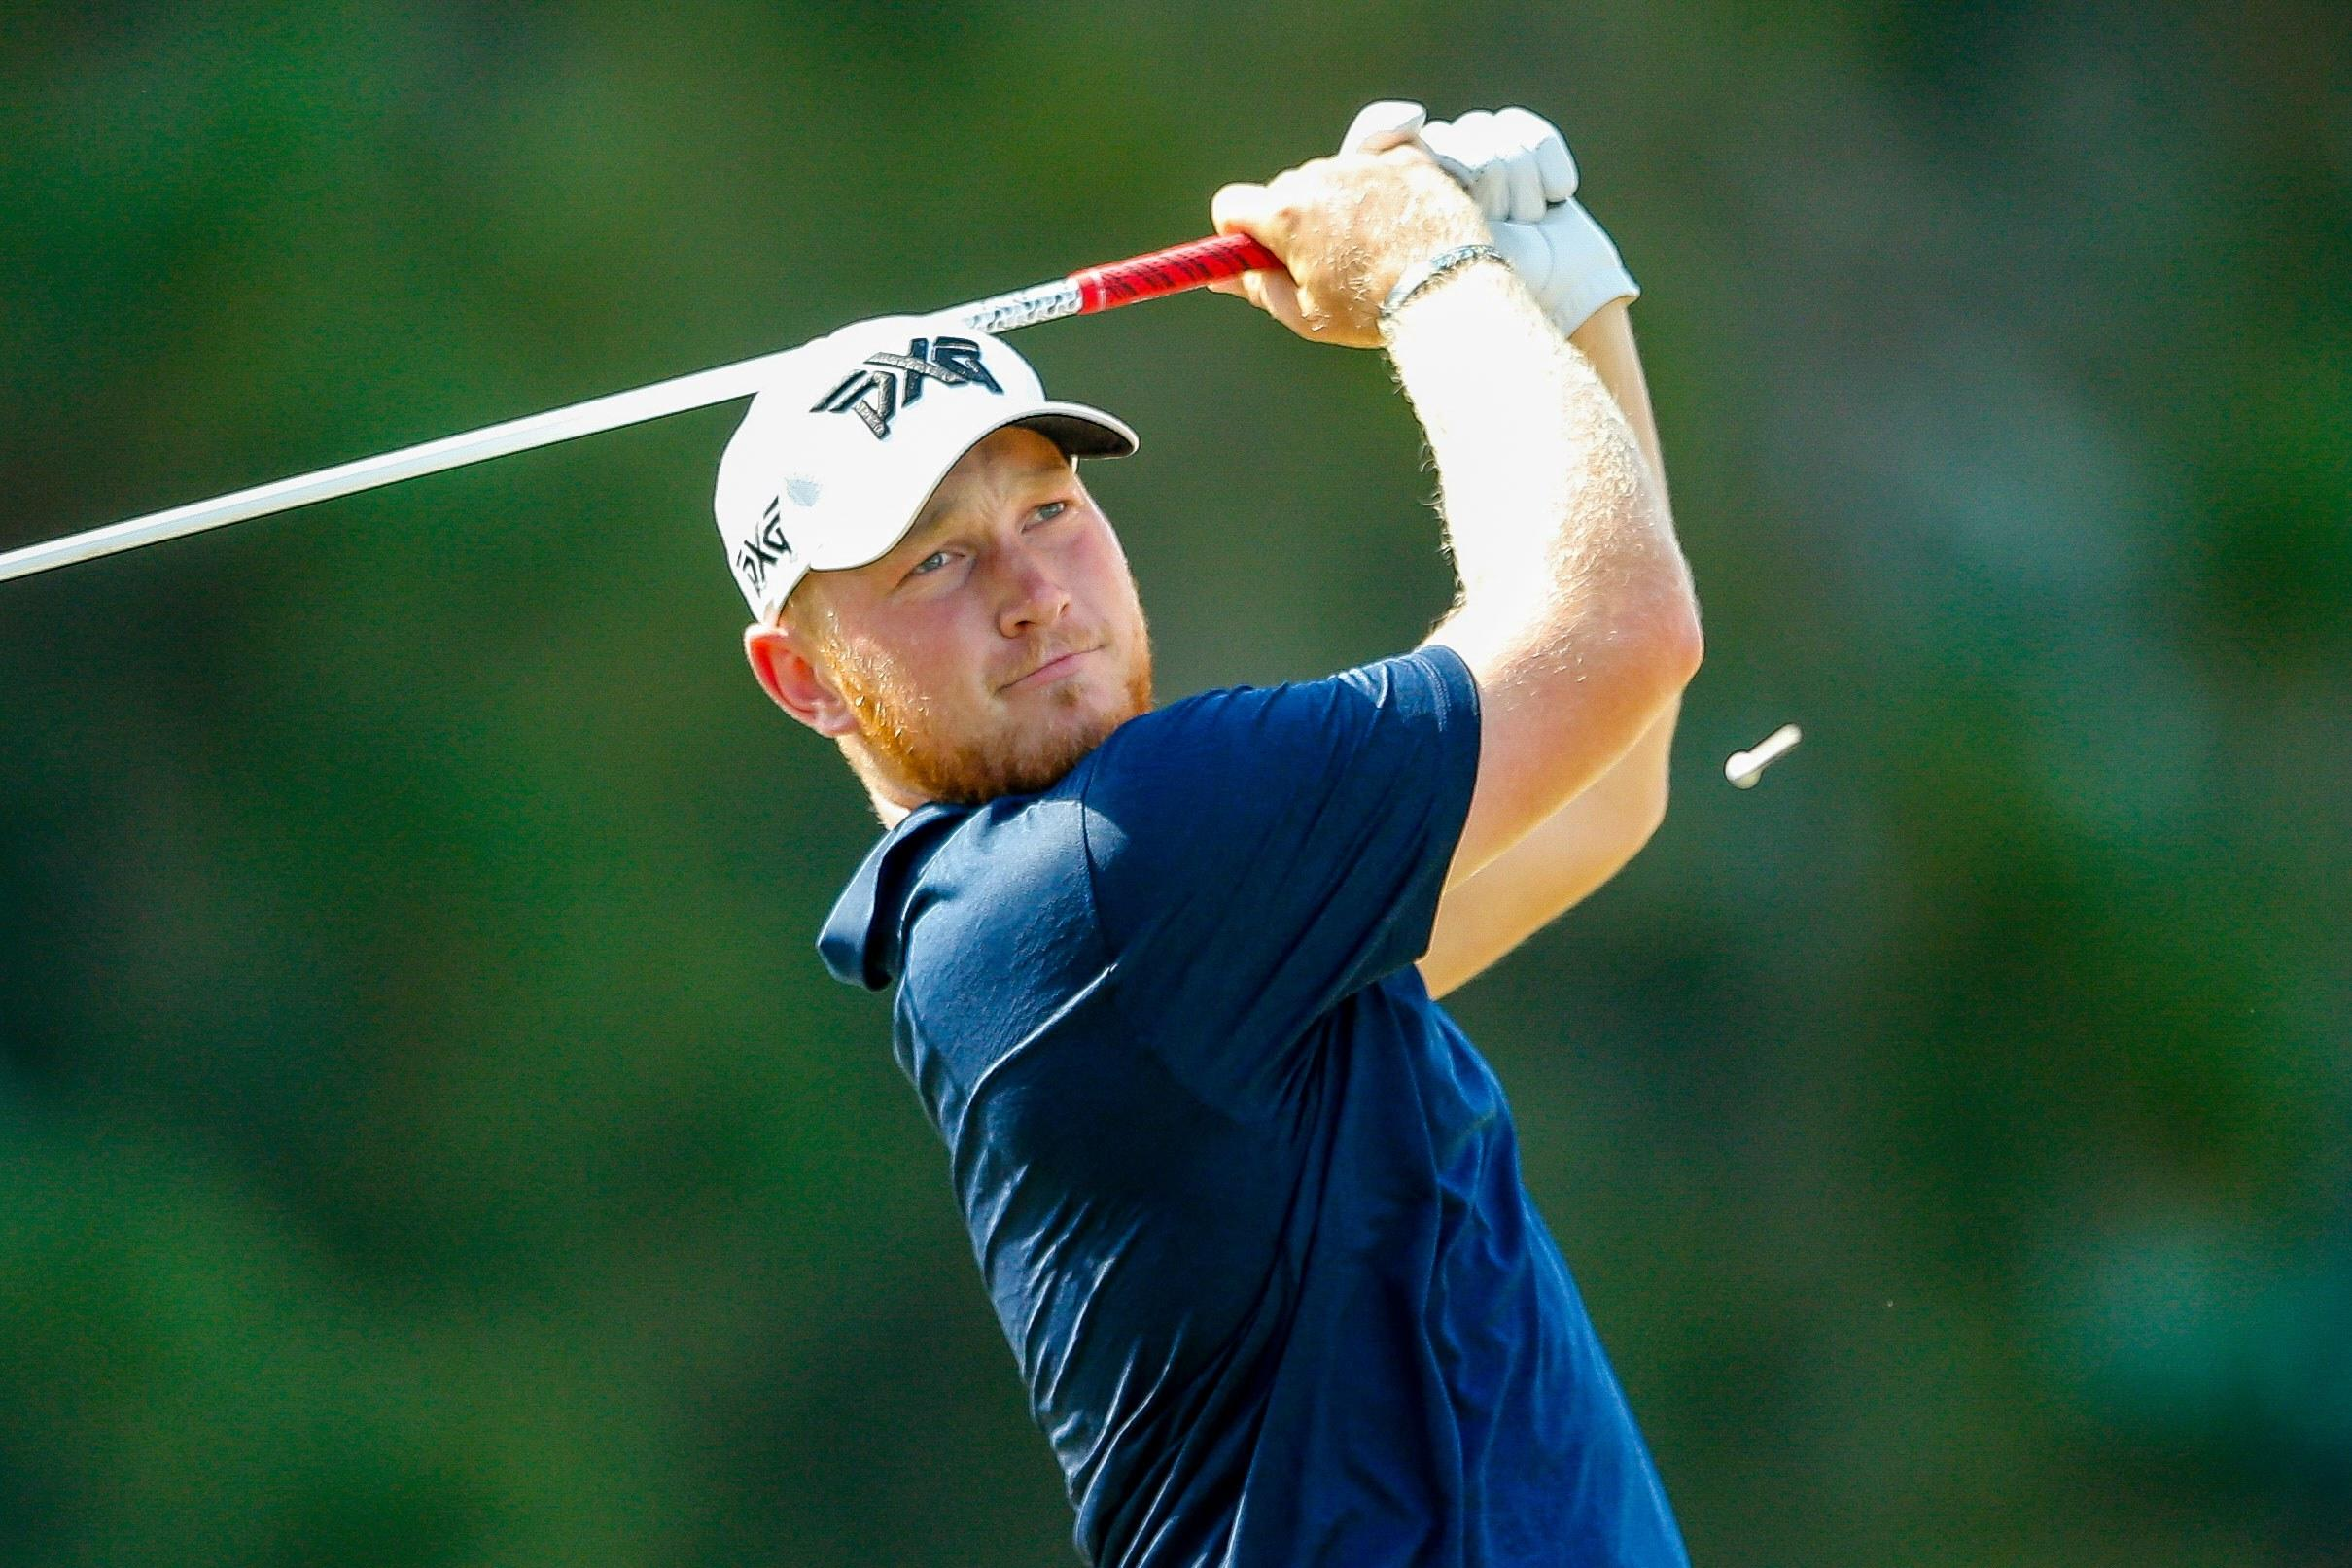 Pro golf is calling Brad Dalke, but not before the forever amateur enjoys a curtain call of sorts